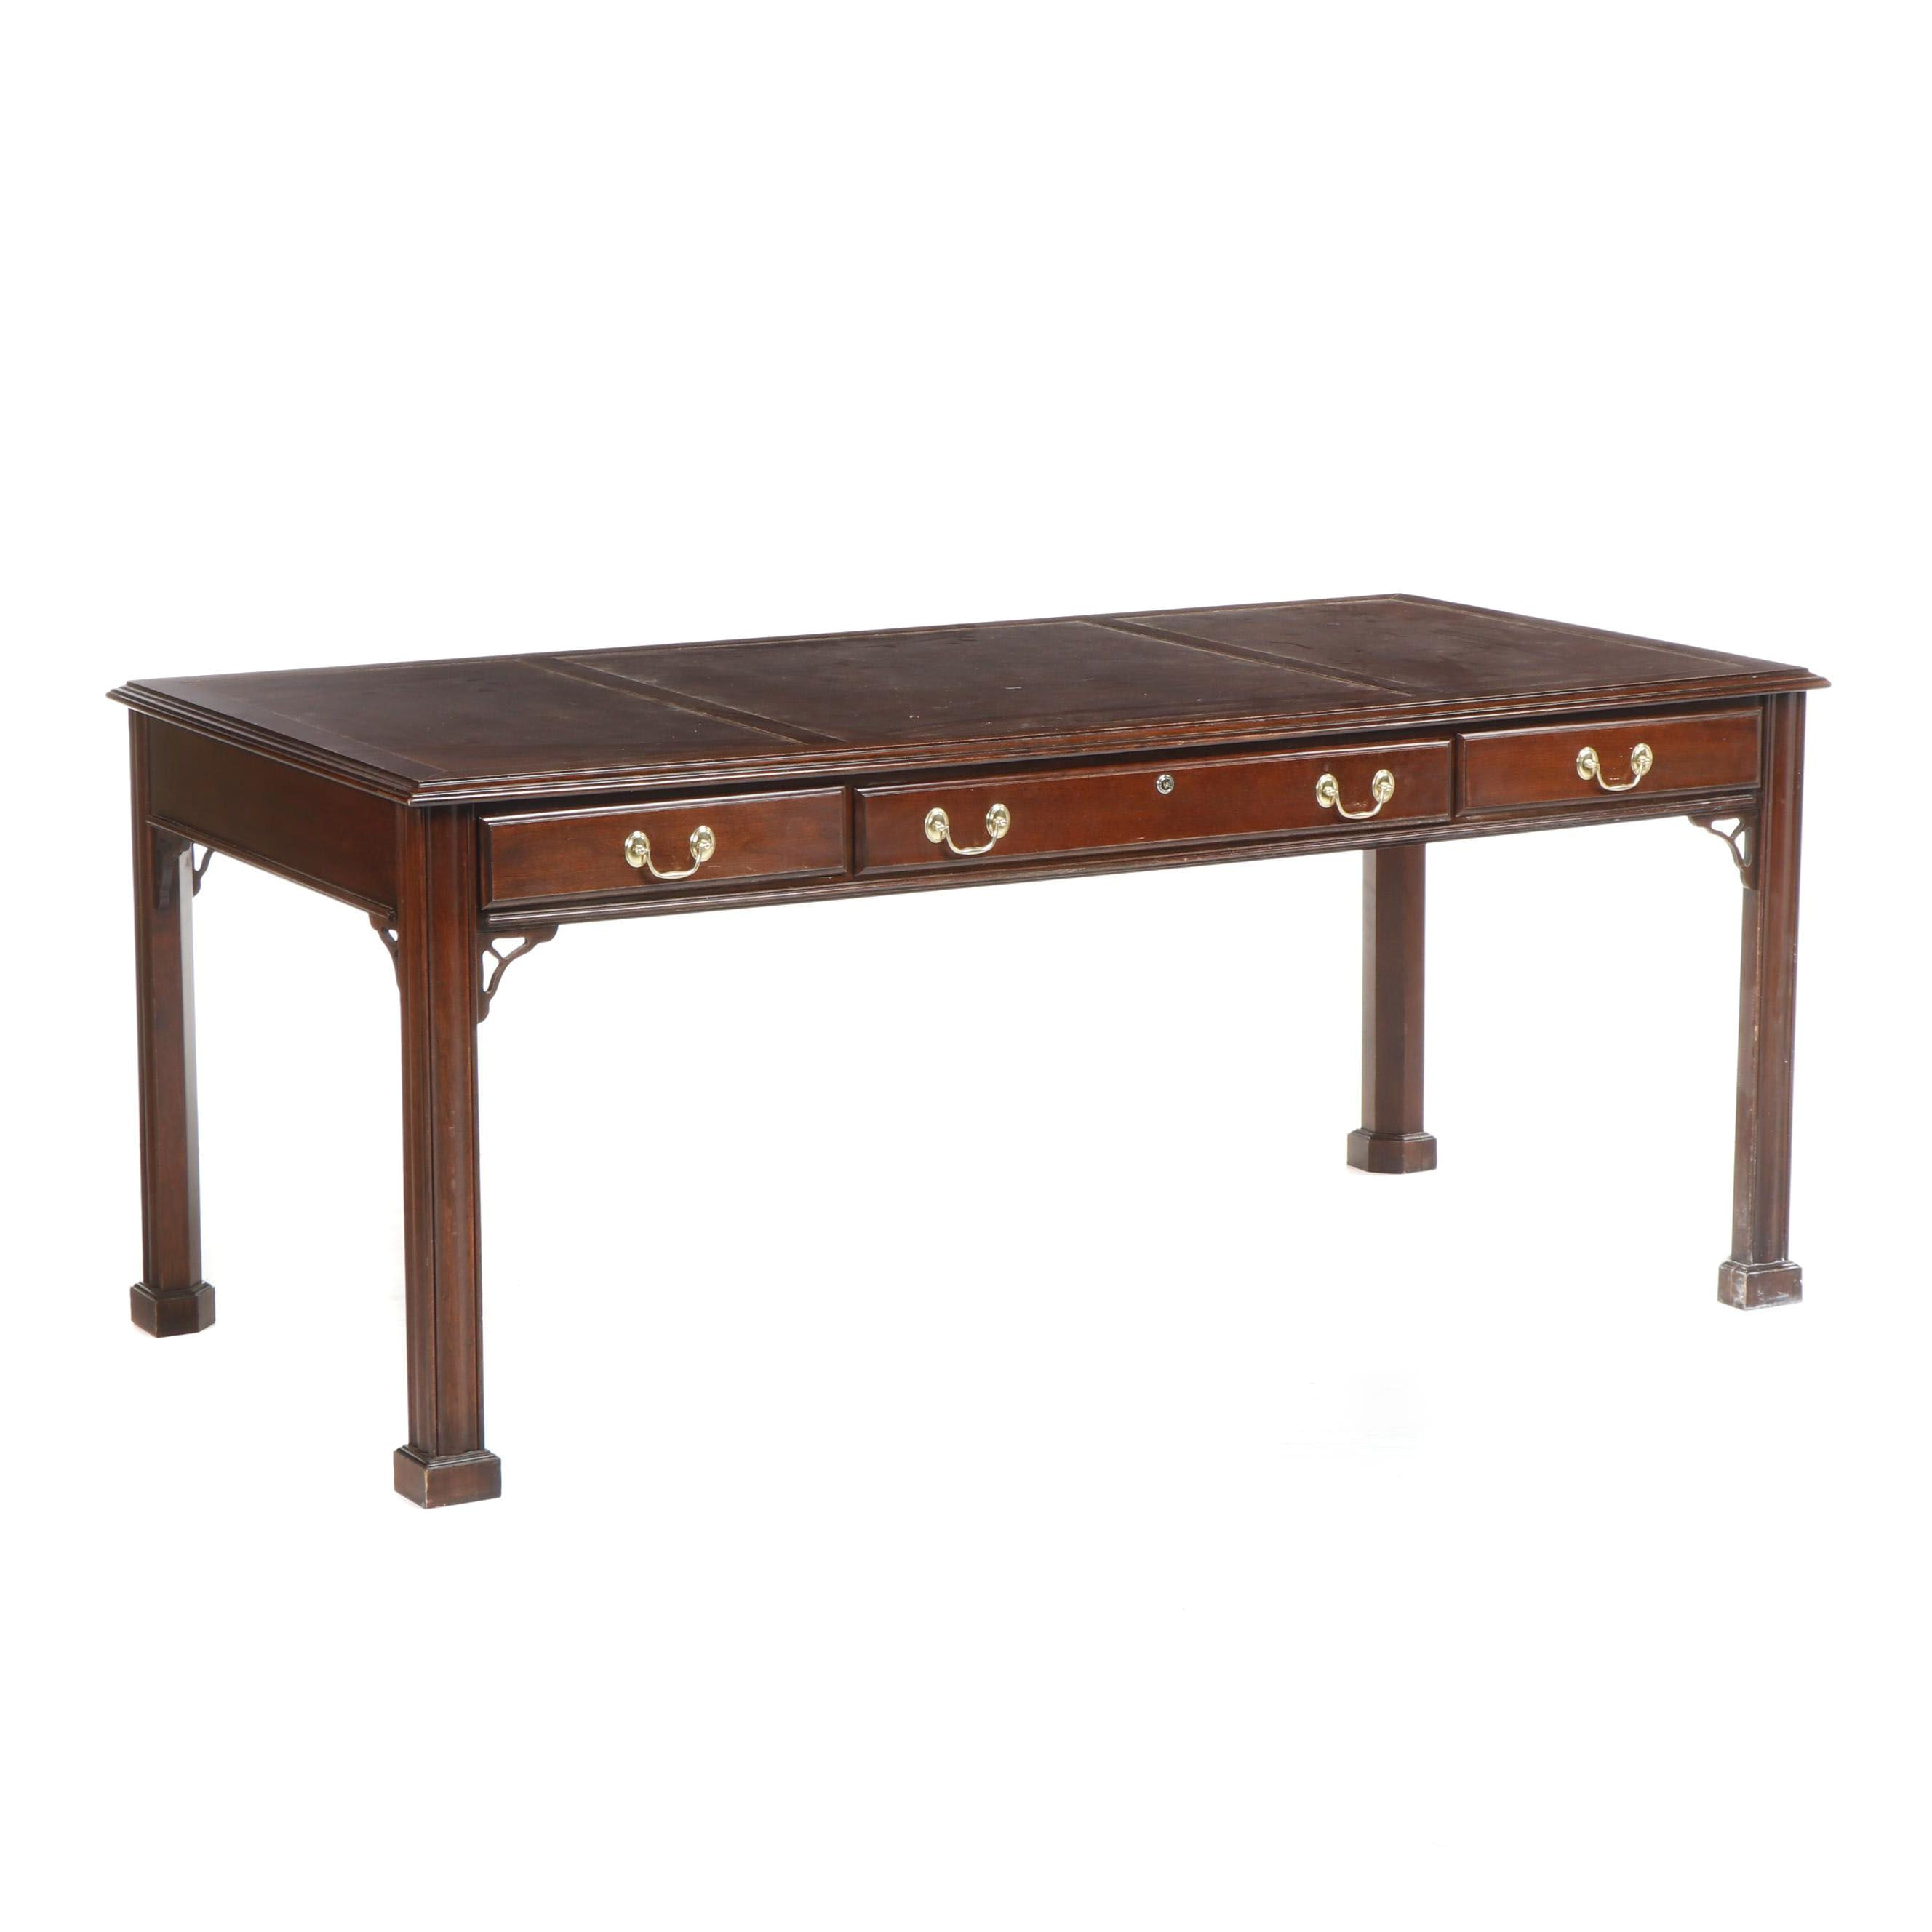 Harden Georgian Style Executive Desk with Leather Padding